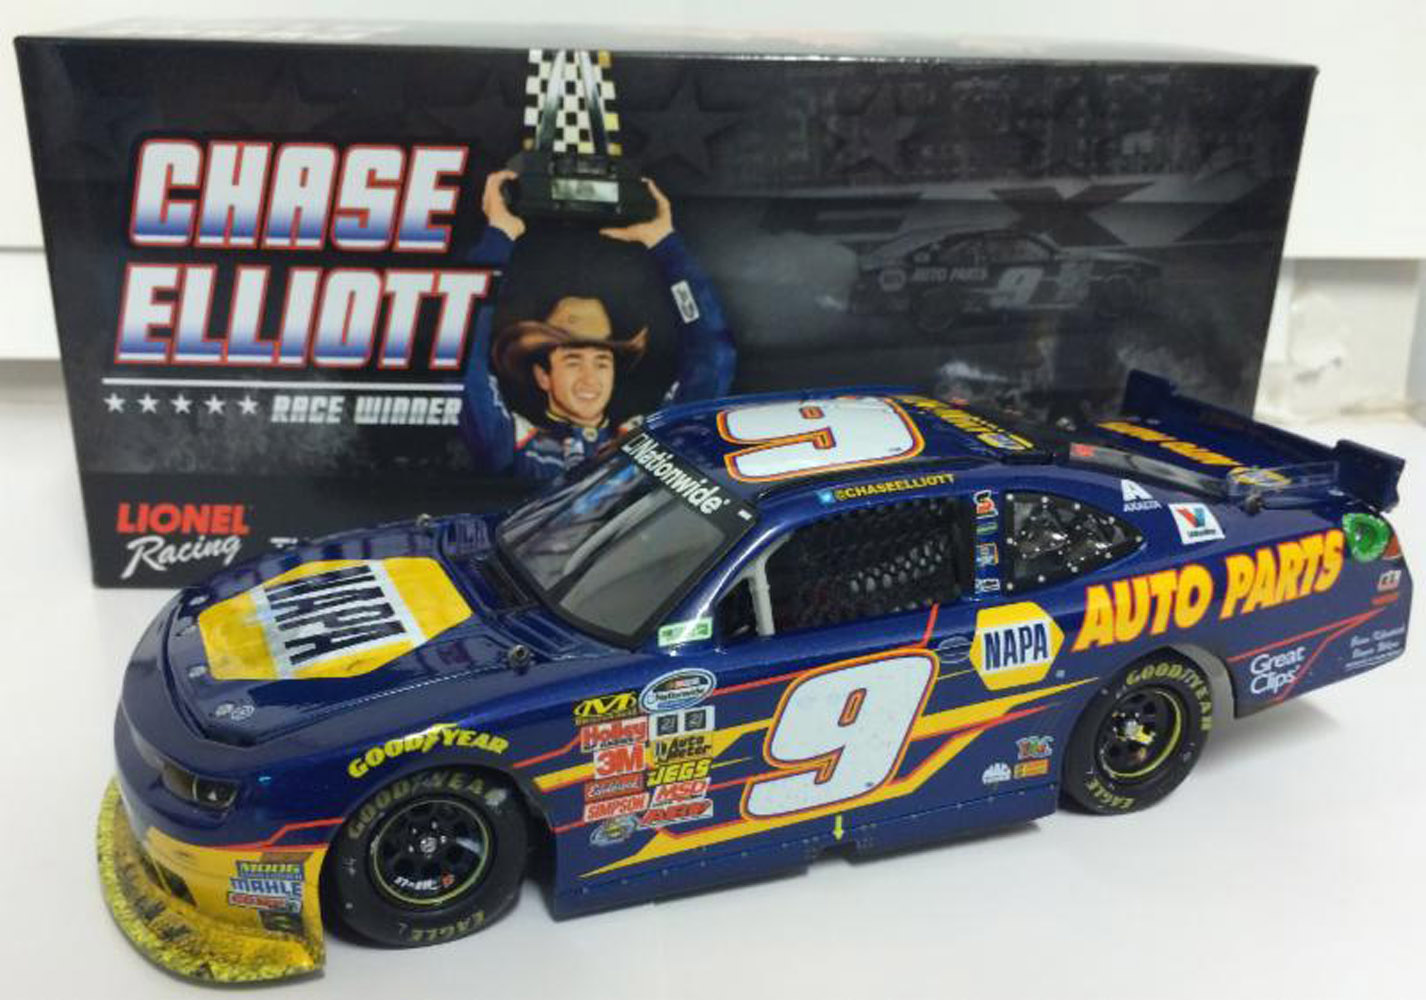 2014 Chase Elliott #9 Napa 1st NW Texas Raced WIN 1/24 Diecast Car.